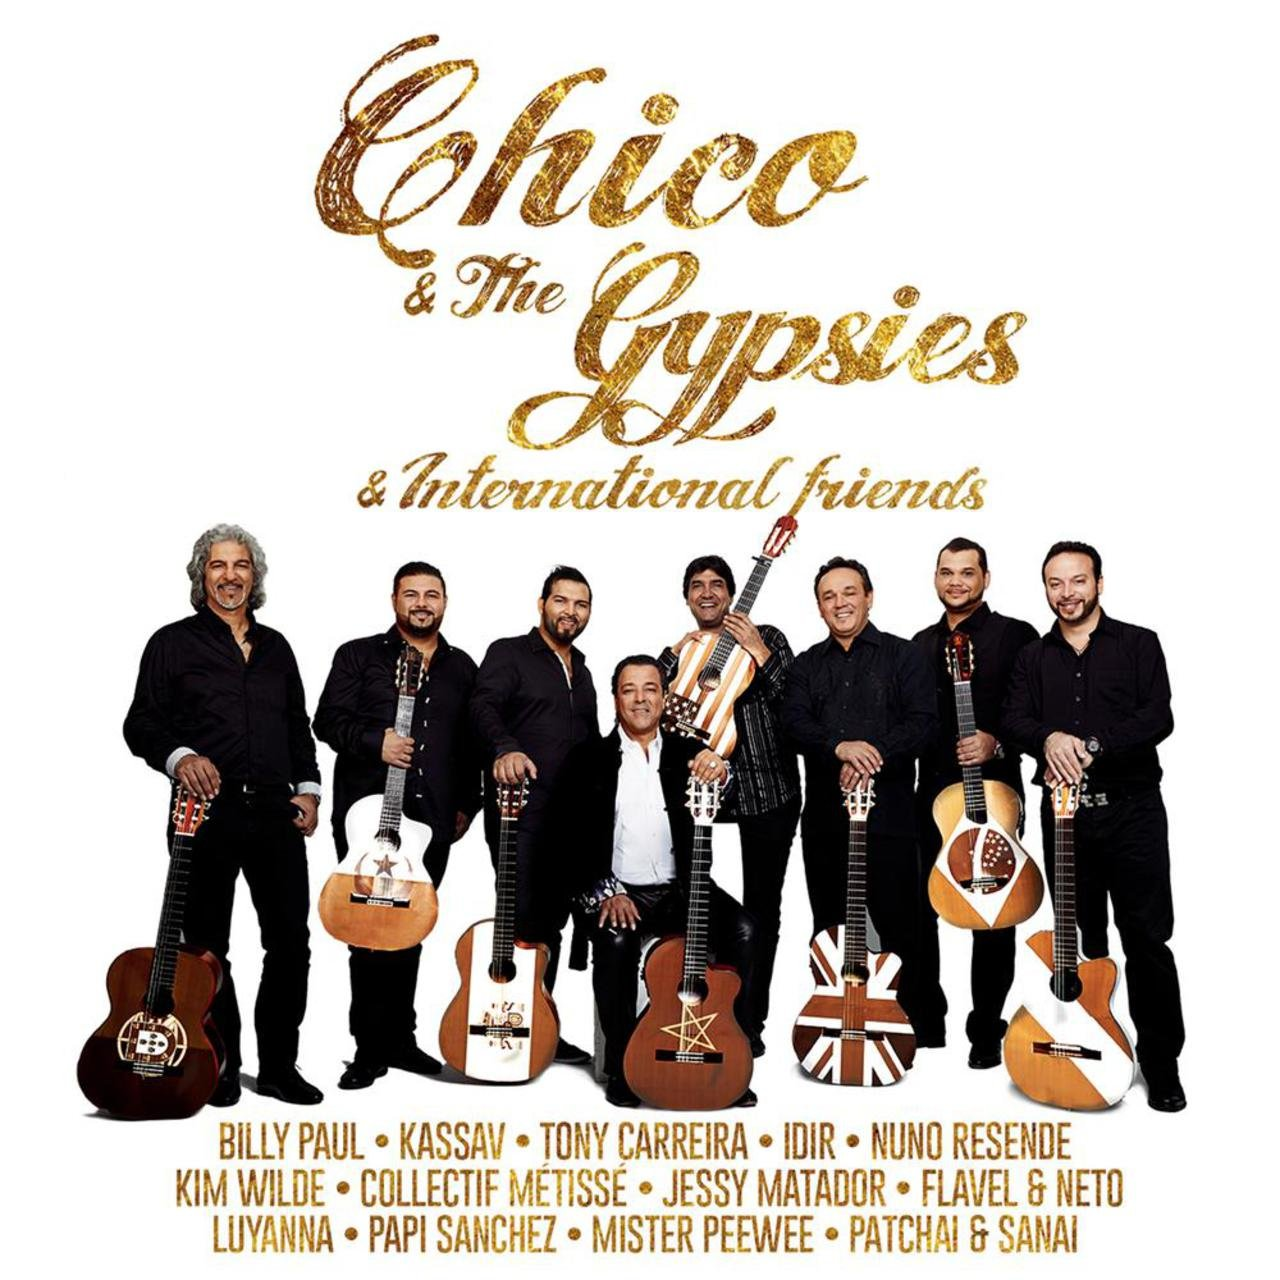 Chico & The Gypsies & International Friends